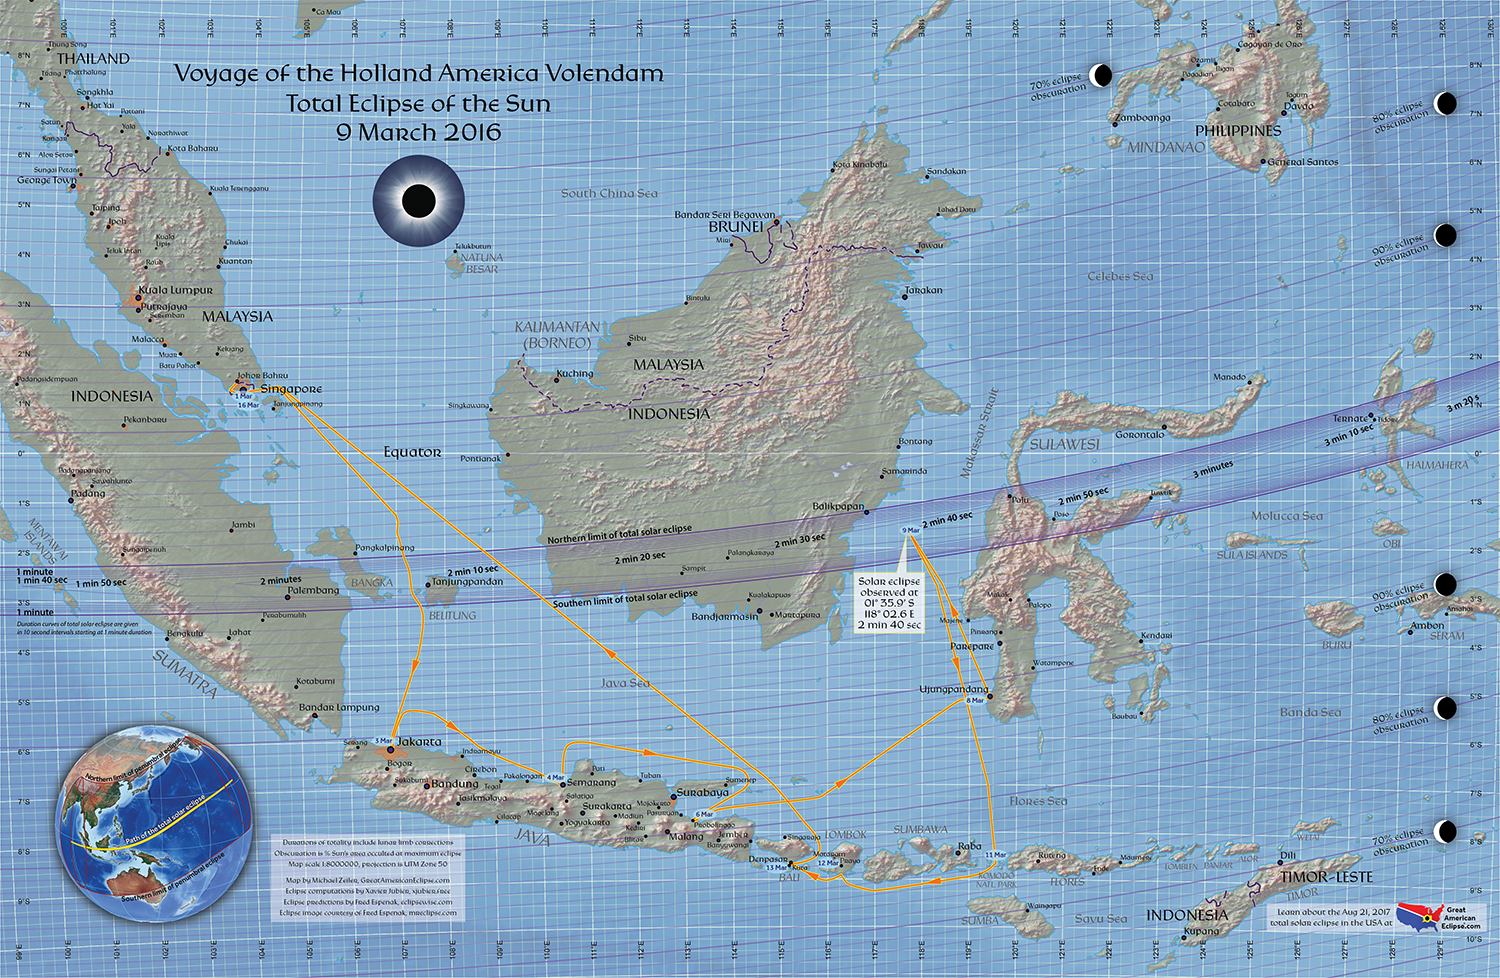 Map of the voyage of the volendam and eclipse path